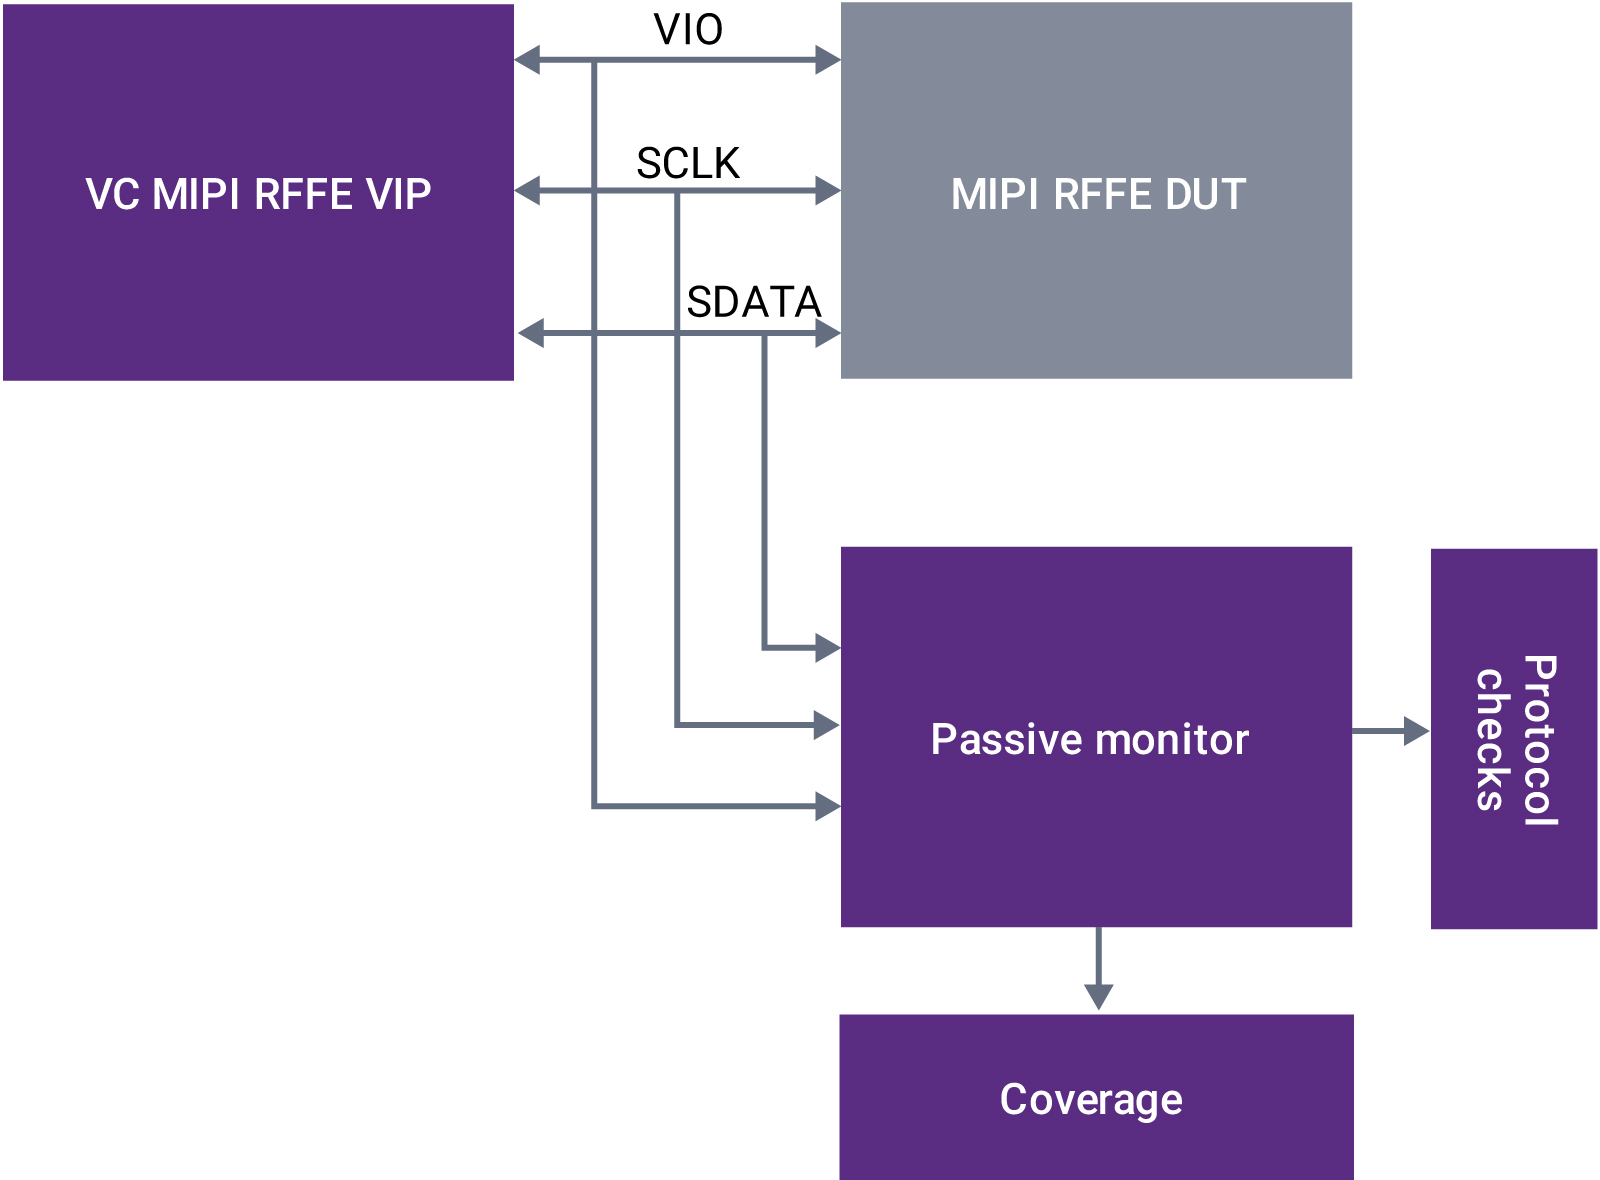 Verification IP for MIPI RFFE